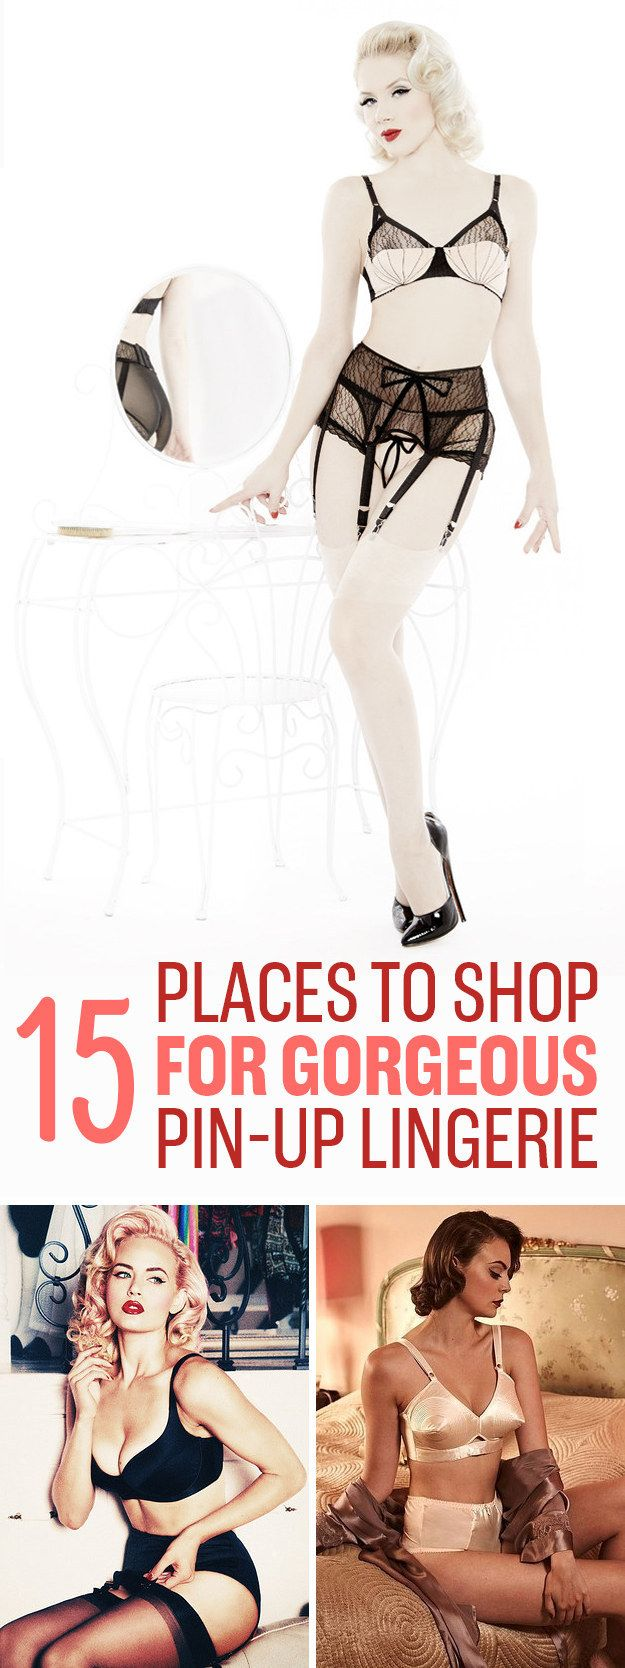 Top 25+ best Lingerie stores ideas on Pinterest | Lingerie store ...